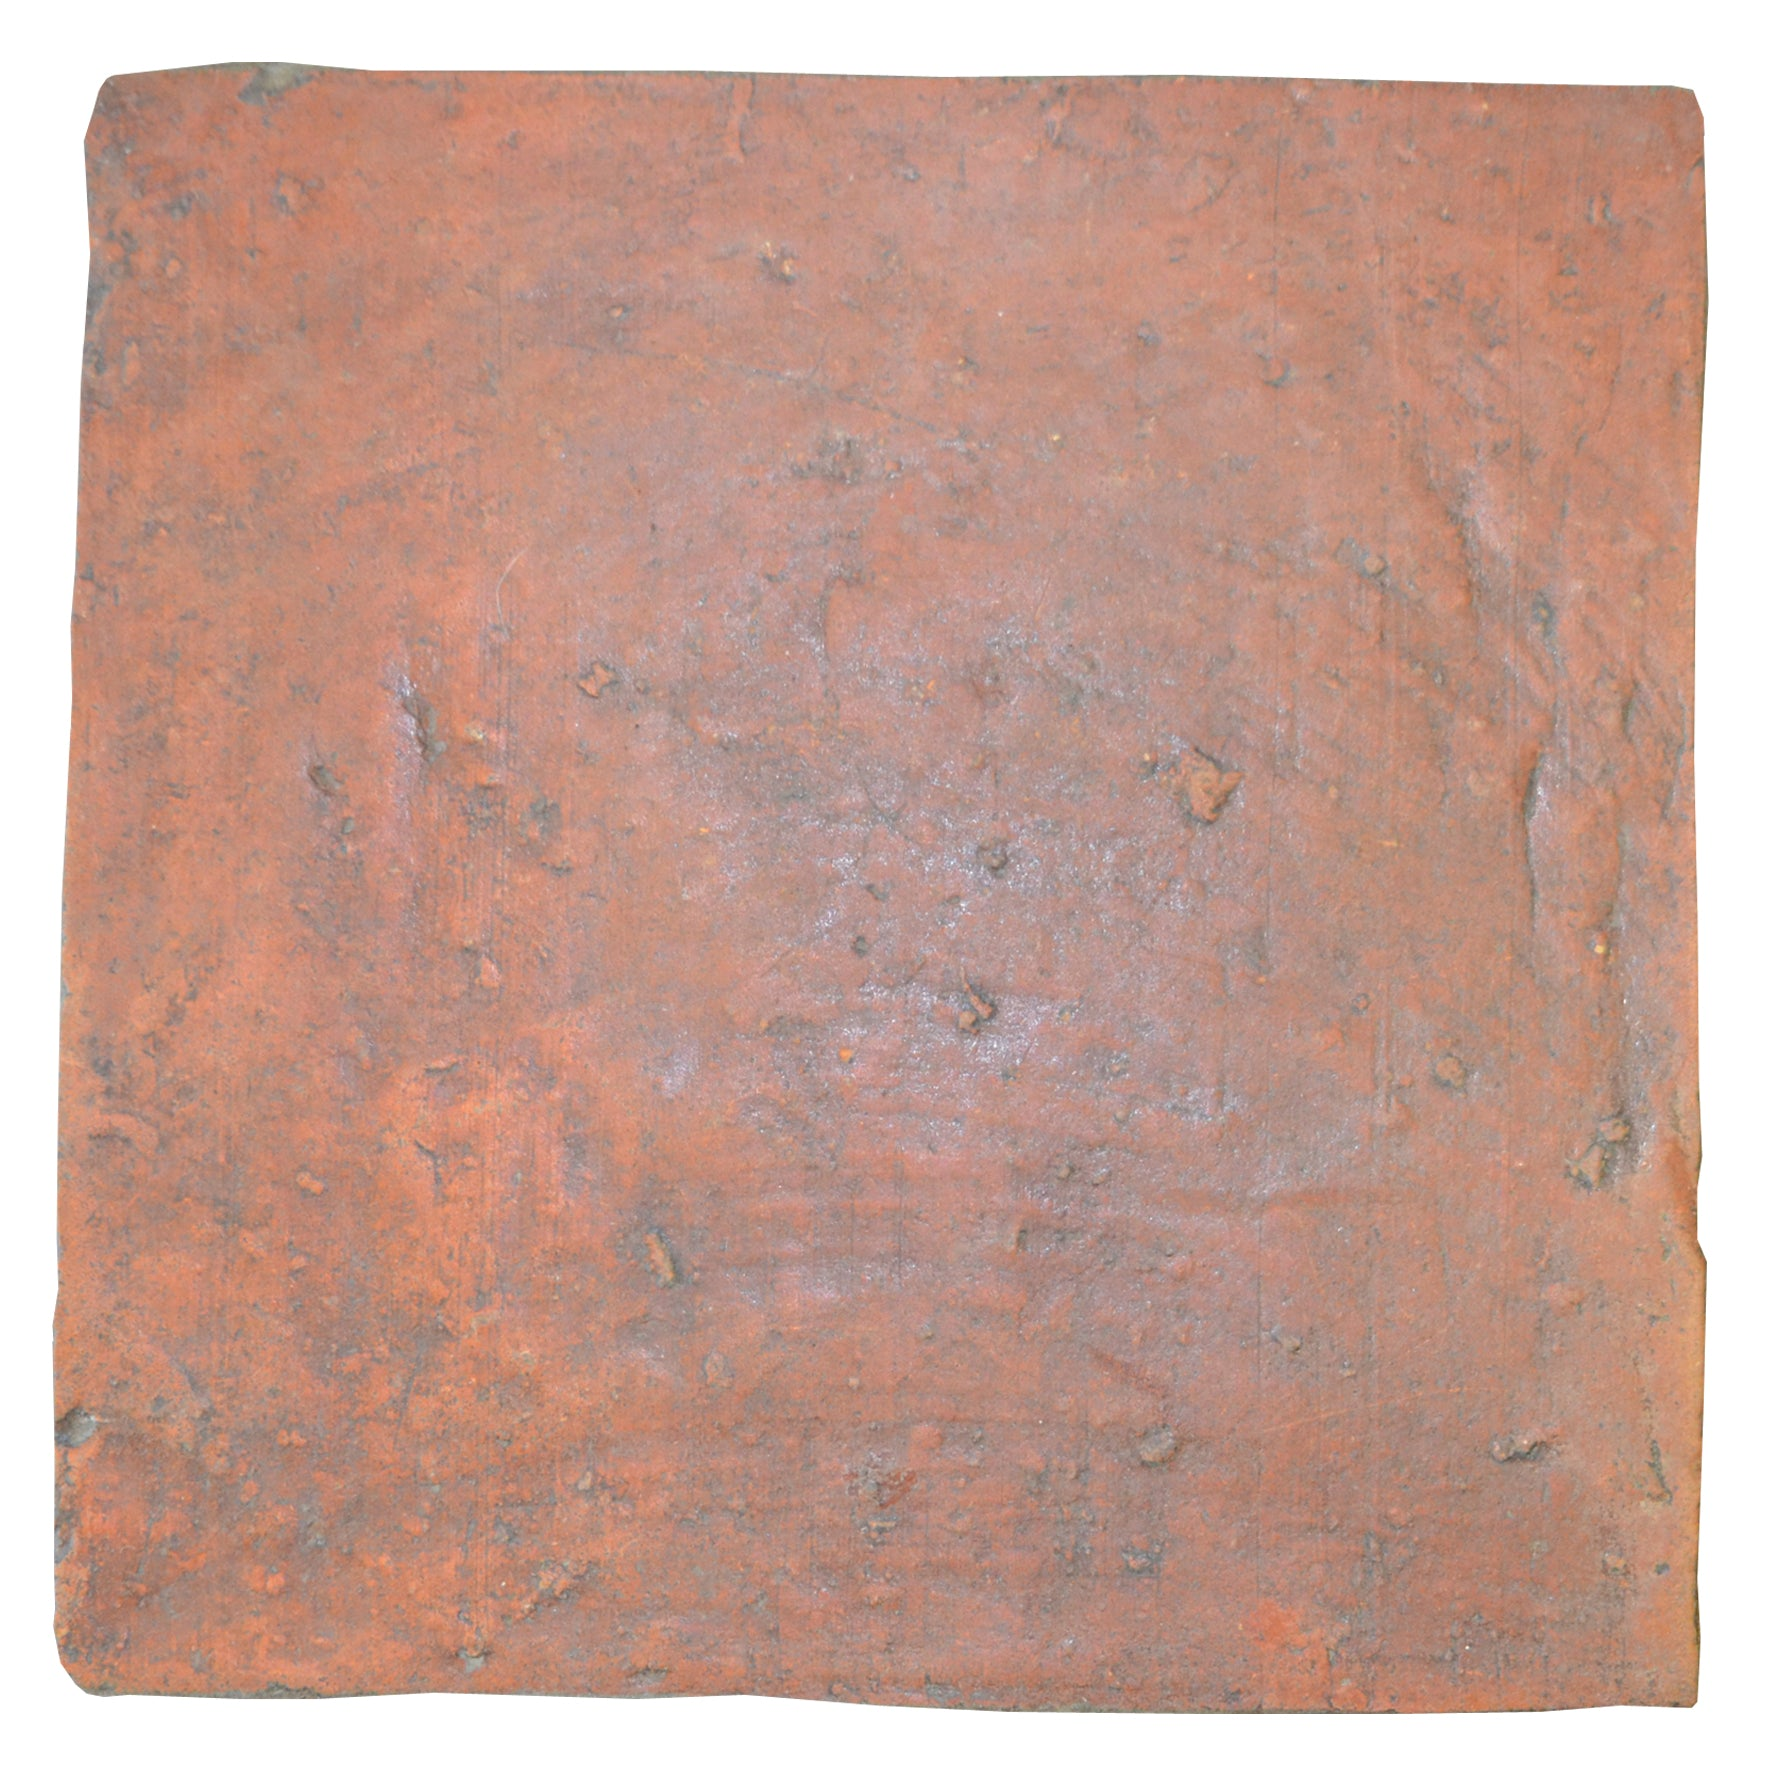 Natural handmade terracotta floor tiles terracotta tiles natural handmade terracotta dailygadgetfo Choice Image